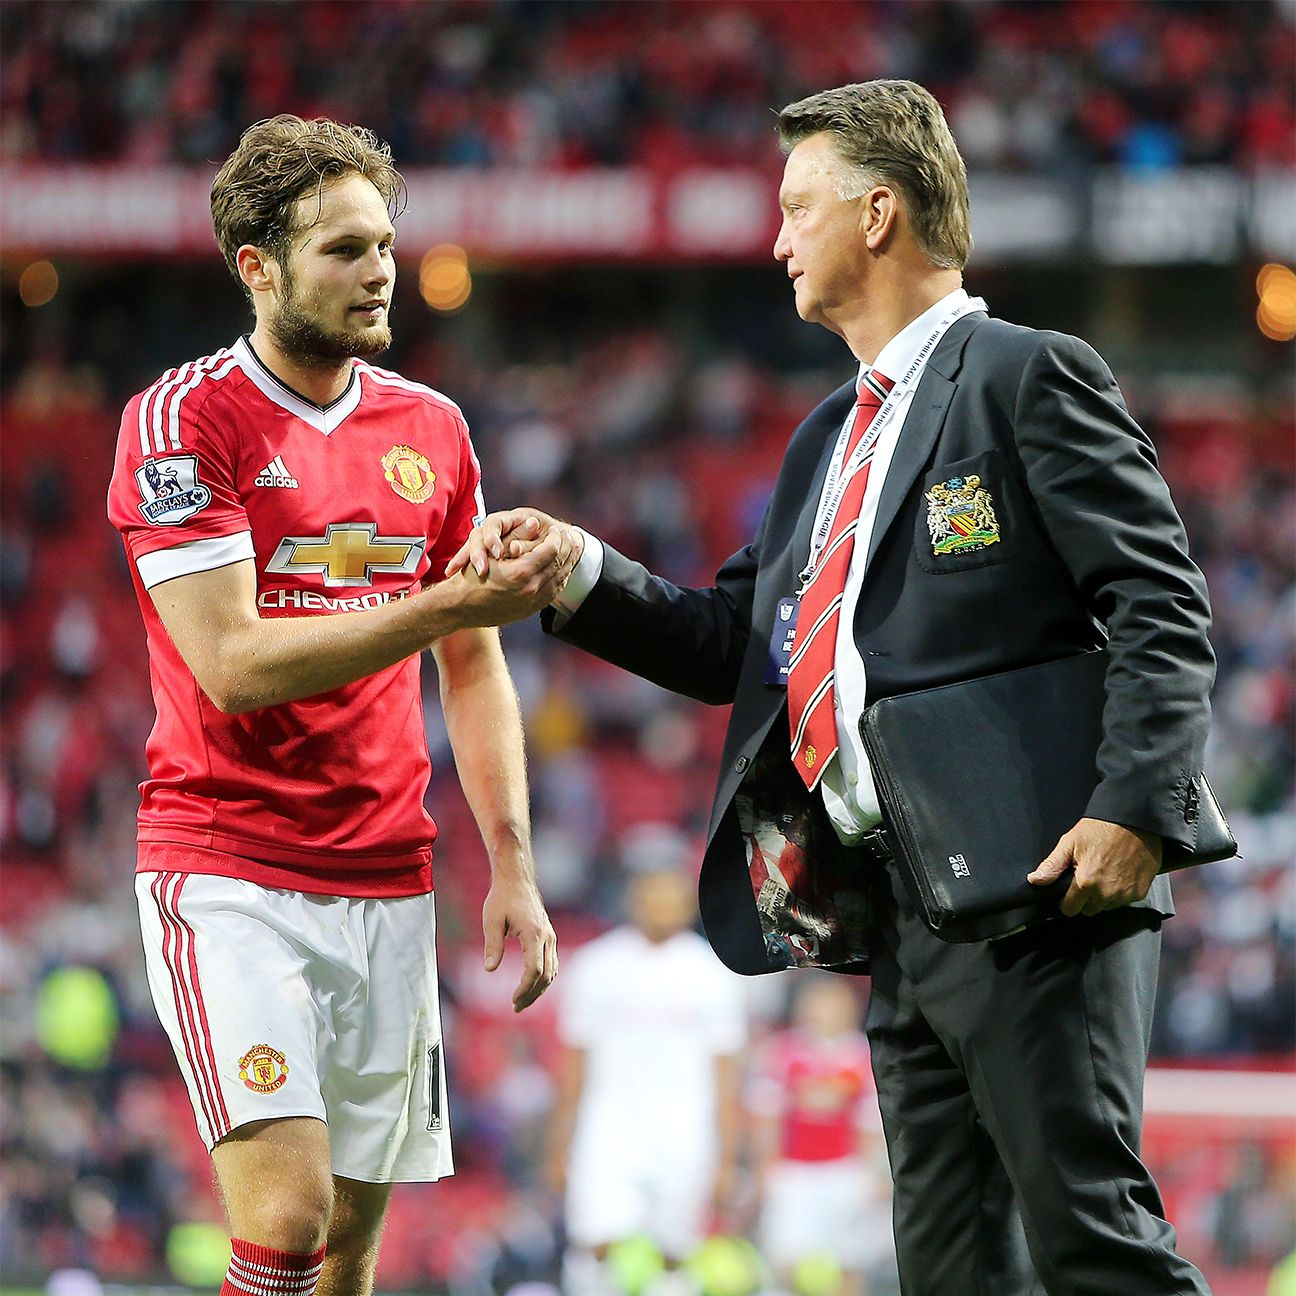 Daley Blind has become a stalwart at centre-back for Man United boss Louis van Gaal.